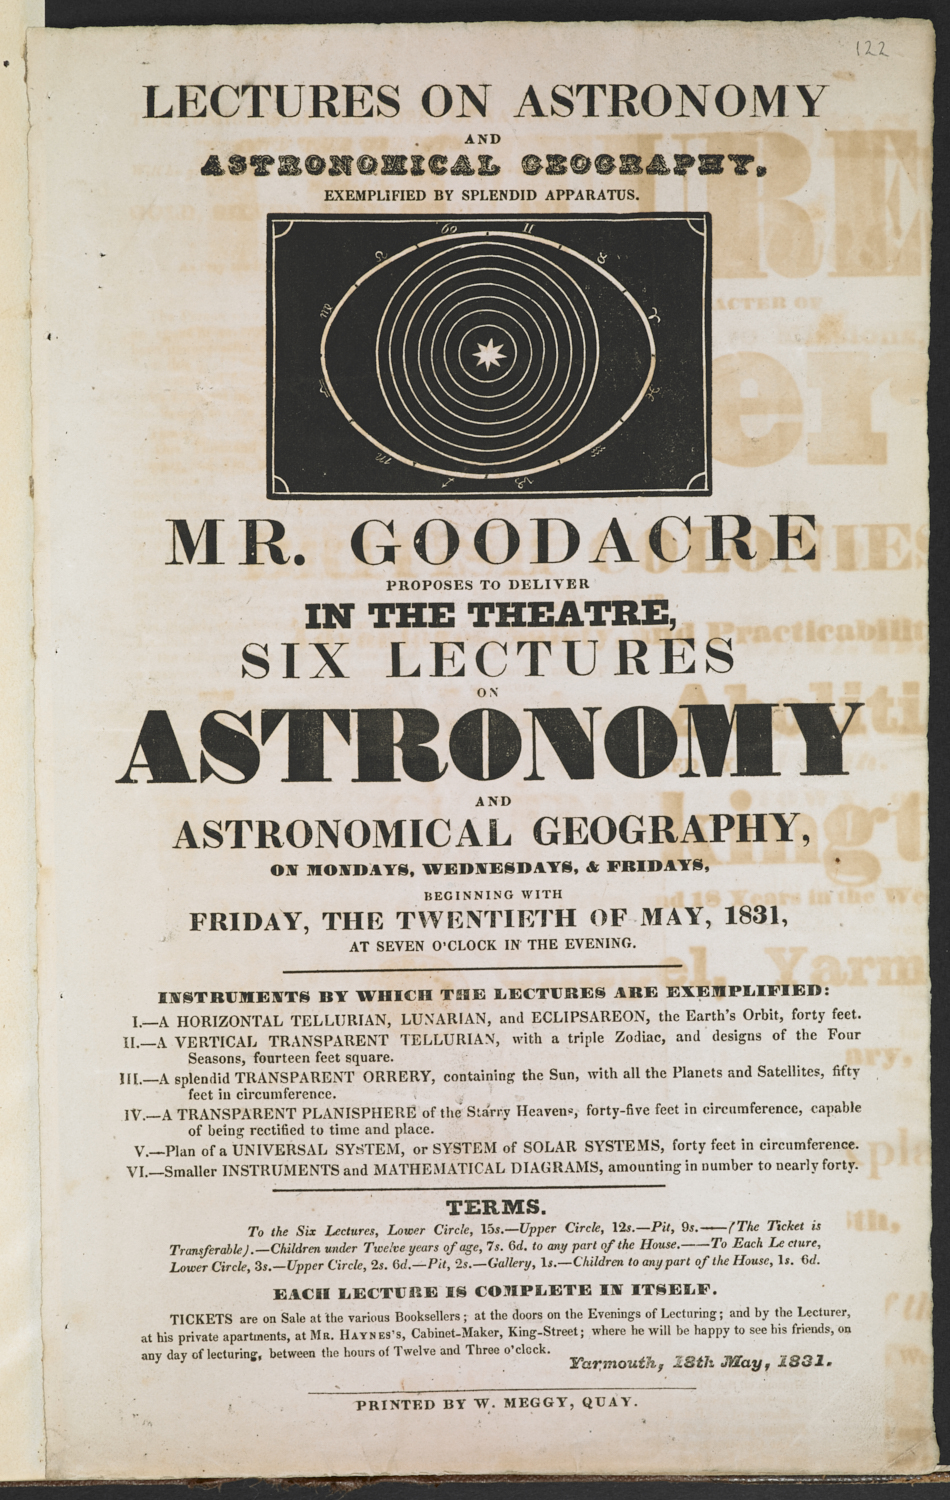 Lectures on astronomy and astronomical geography. Exemplified by splendid apparatus. Mr. Goodacre proposes to deliver in the theatre, six lectures on astronomy and astronomical geography, on Mondays, Wednesdays, & Fridays, beginning with Friday, the twentieth of May, 1831, at seven o'clock in the evening, [Great Yarmouth], printed by W. Meggy, Quay, [1831], 33 x 20 cm, N.Tab.2012/6(1i) (122)